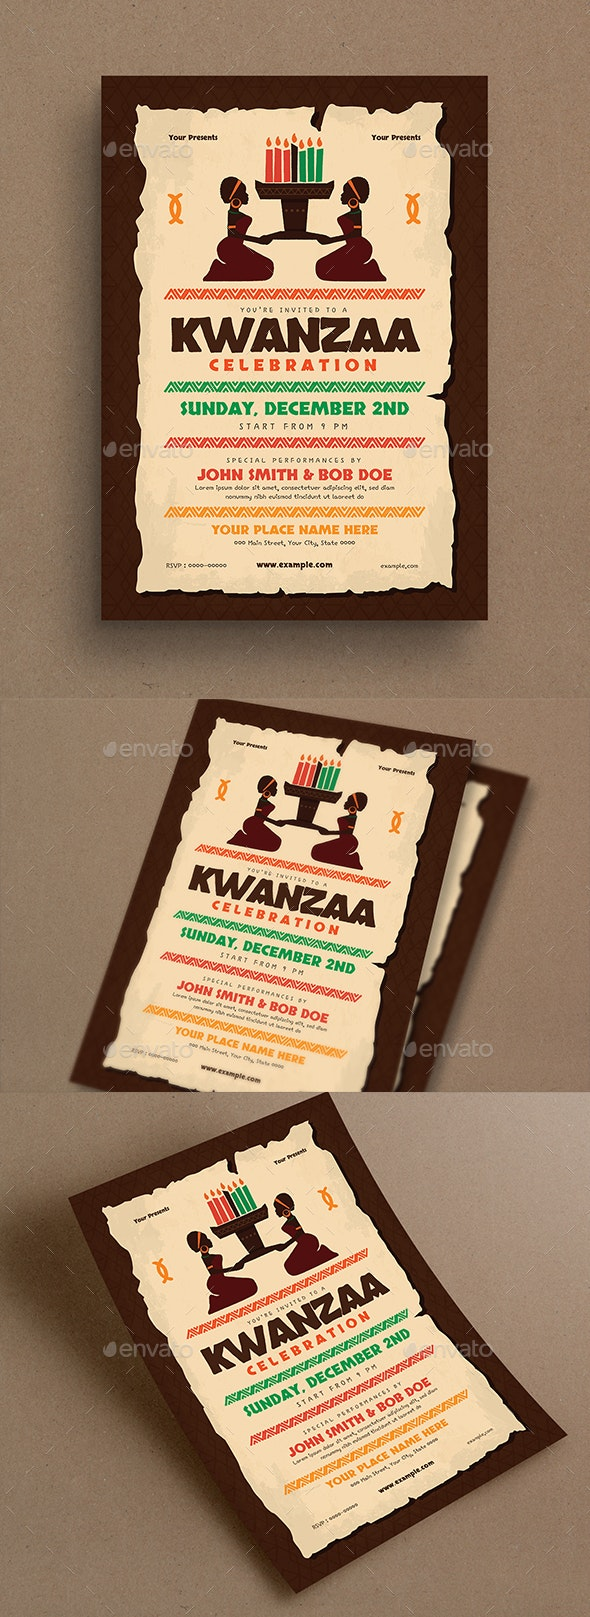 Kwanzaa Event Flyer - Holidays Events